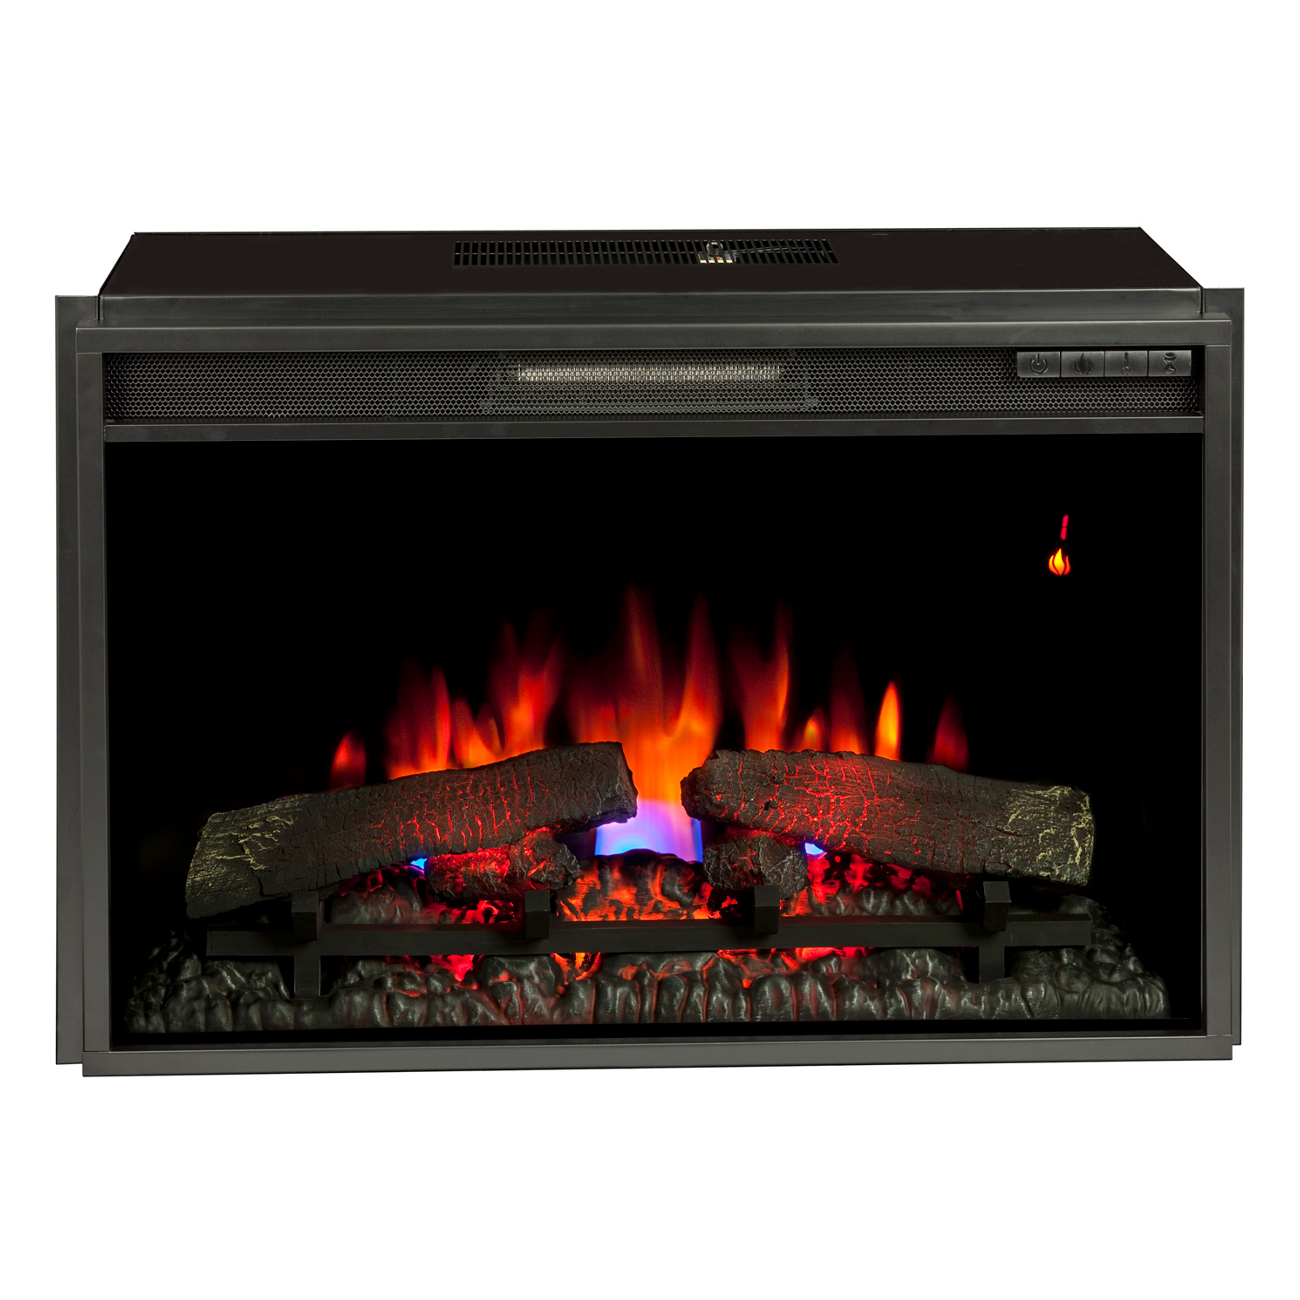 Classic Flame 26 26ef031grp Electric Fireplace Insert